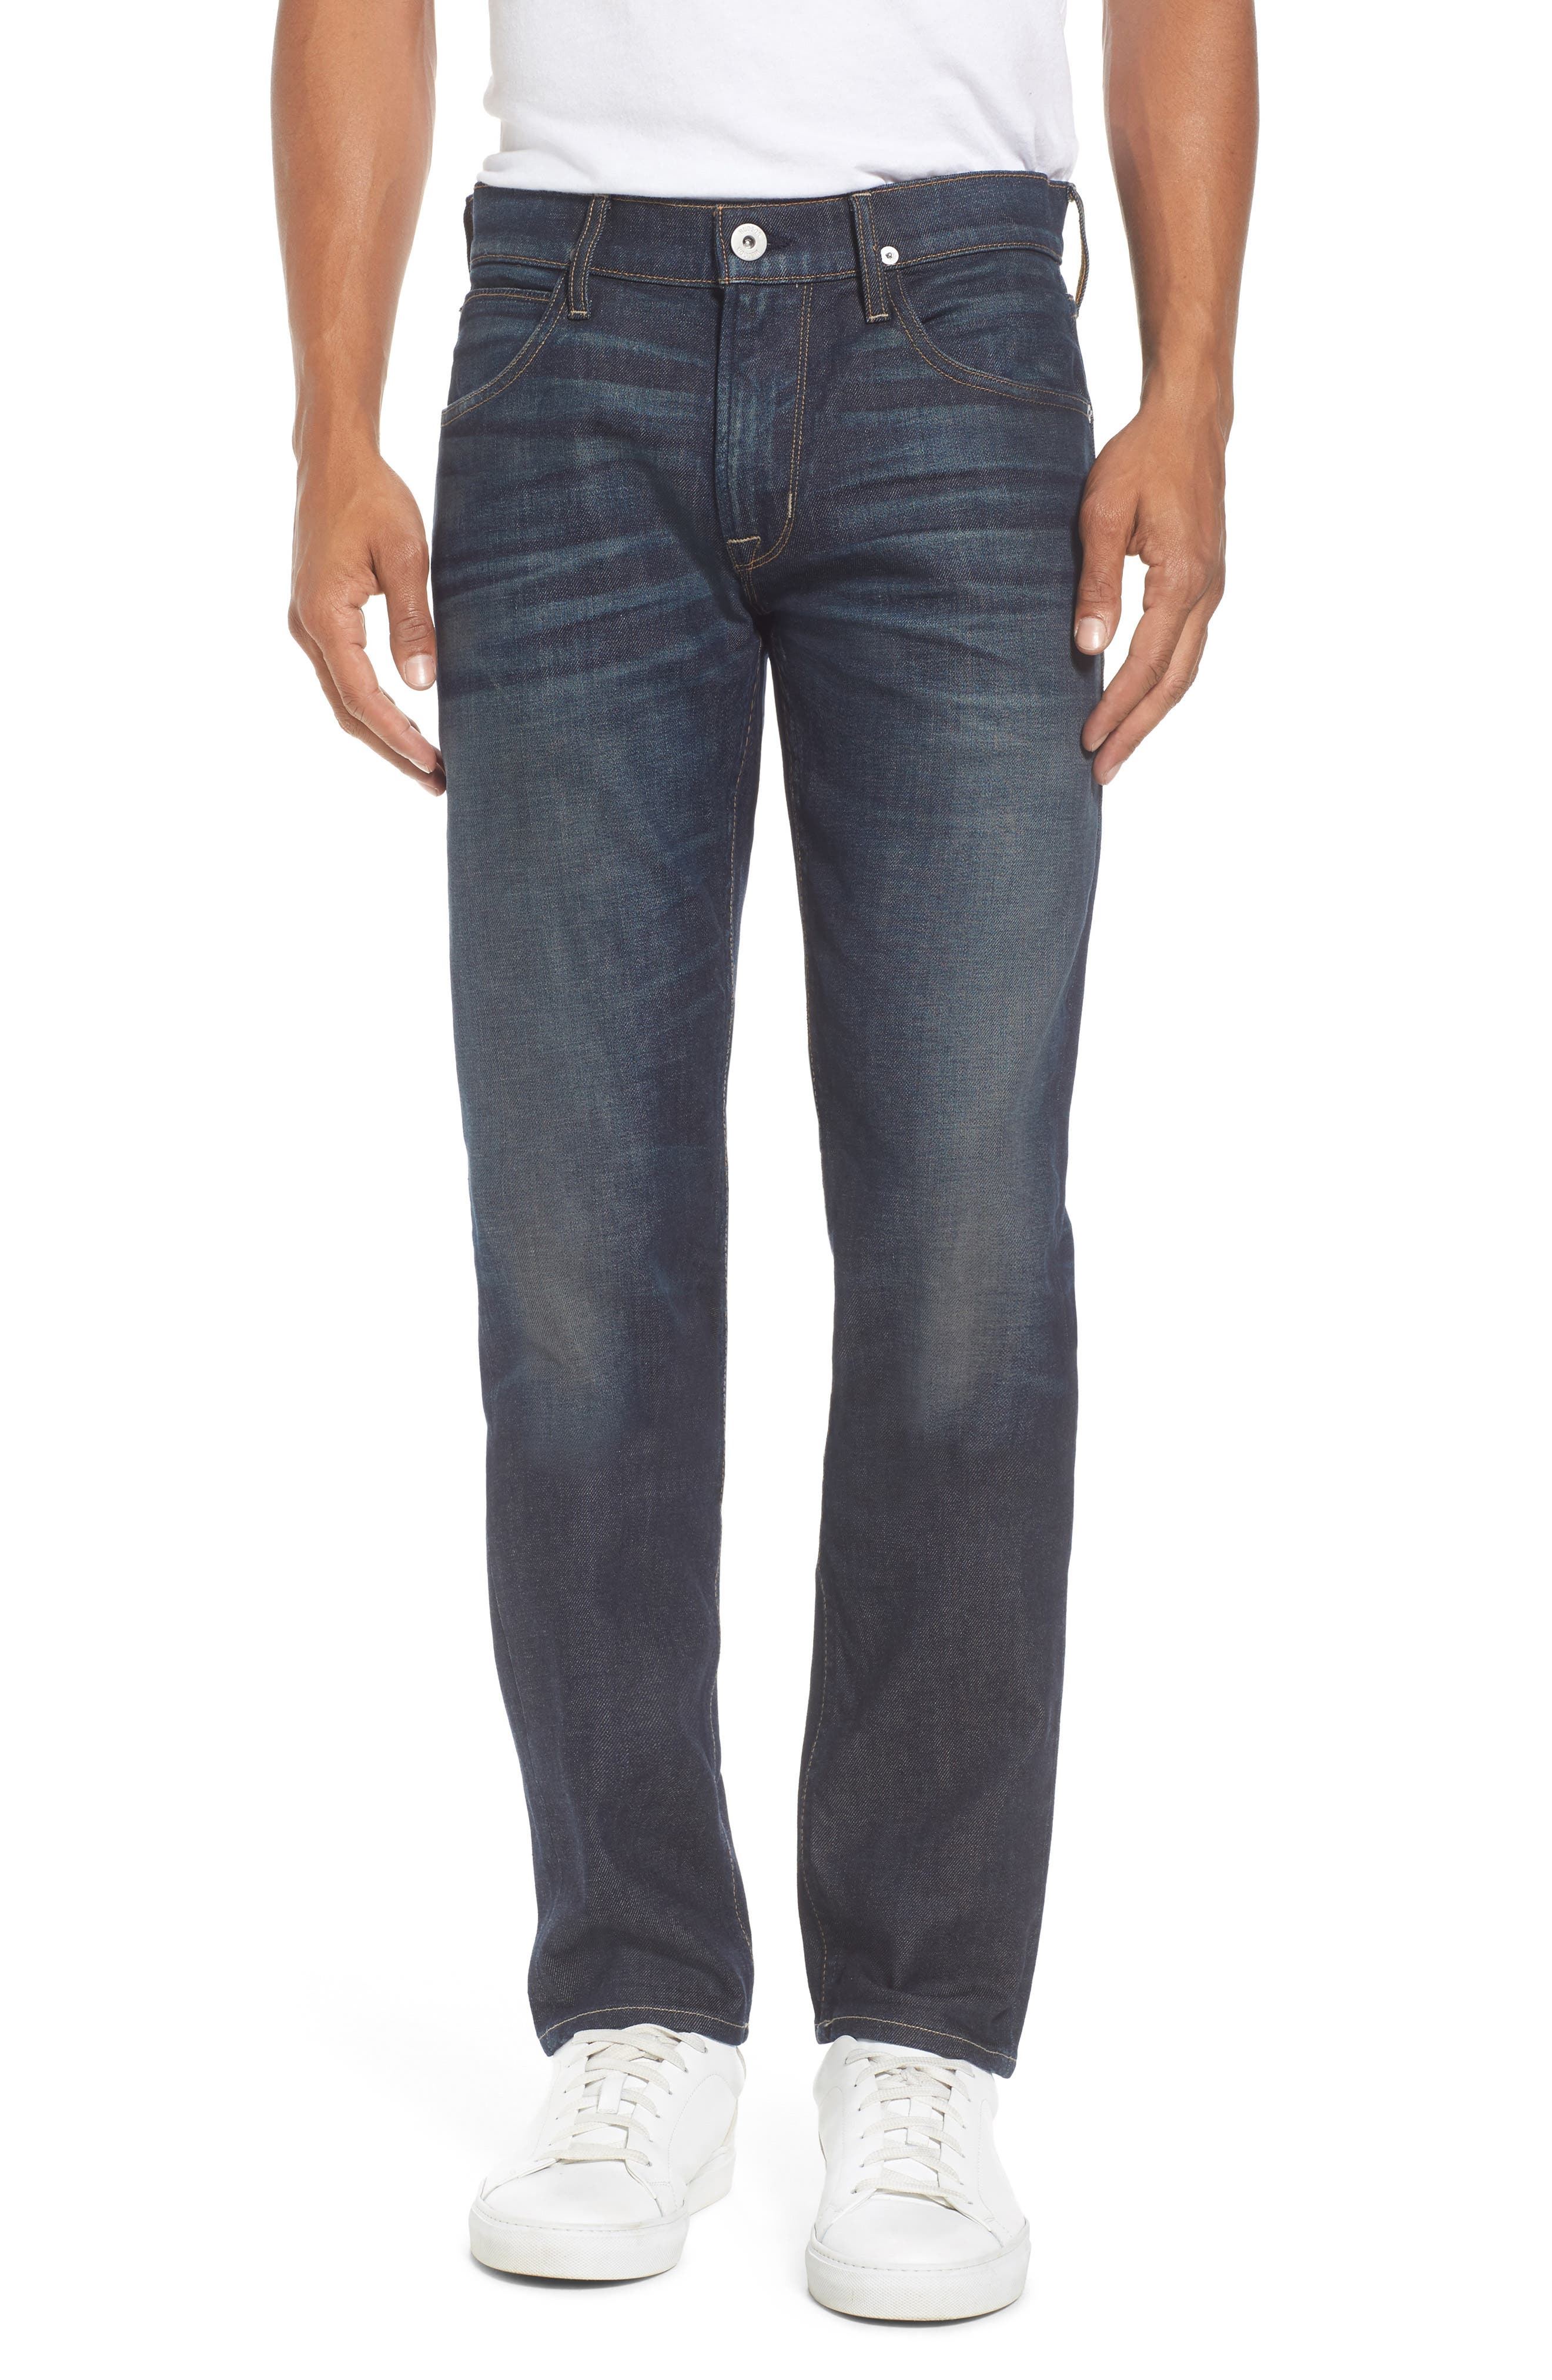 Alternate Image 1 Selected - Hudson Jeans Blake Slim Fit Jeans (Crusher)